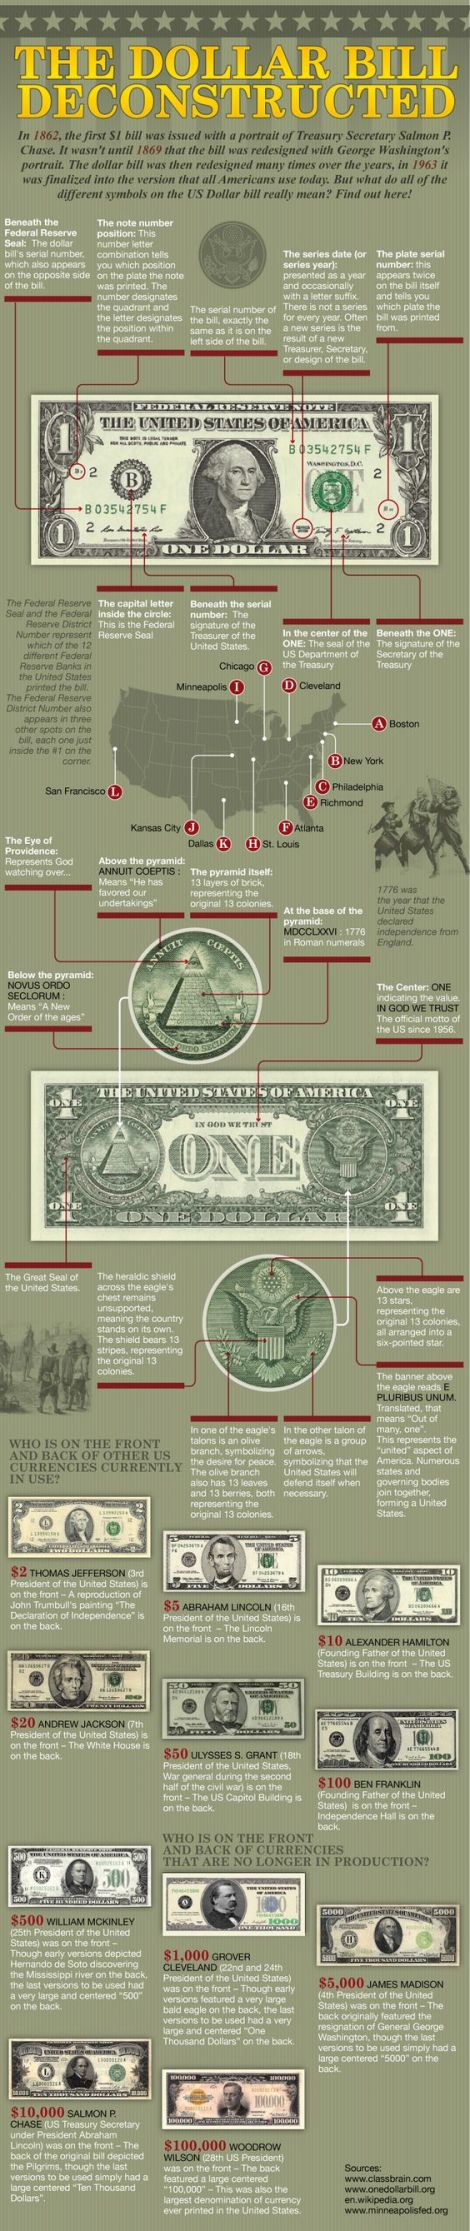 Dollar Bill Deconstructed